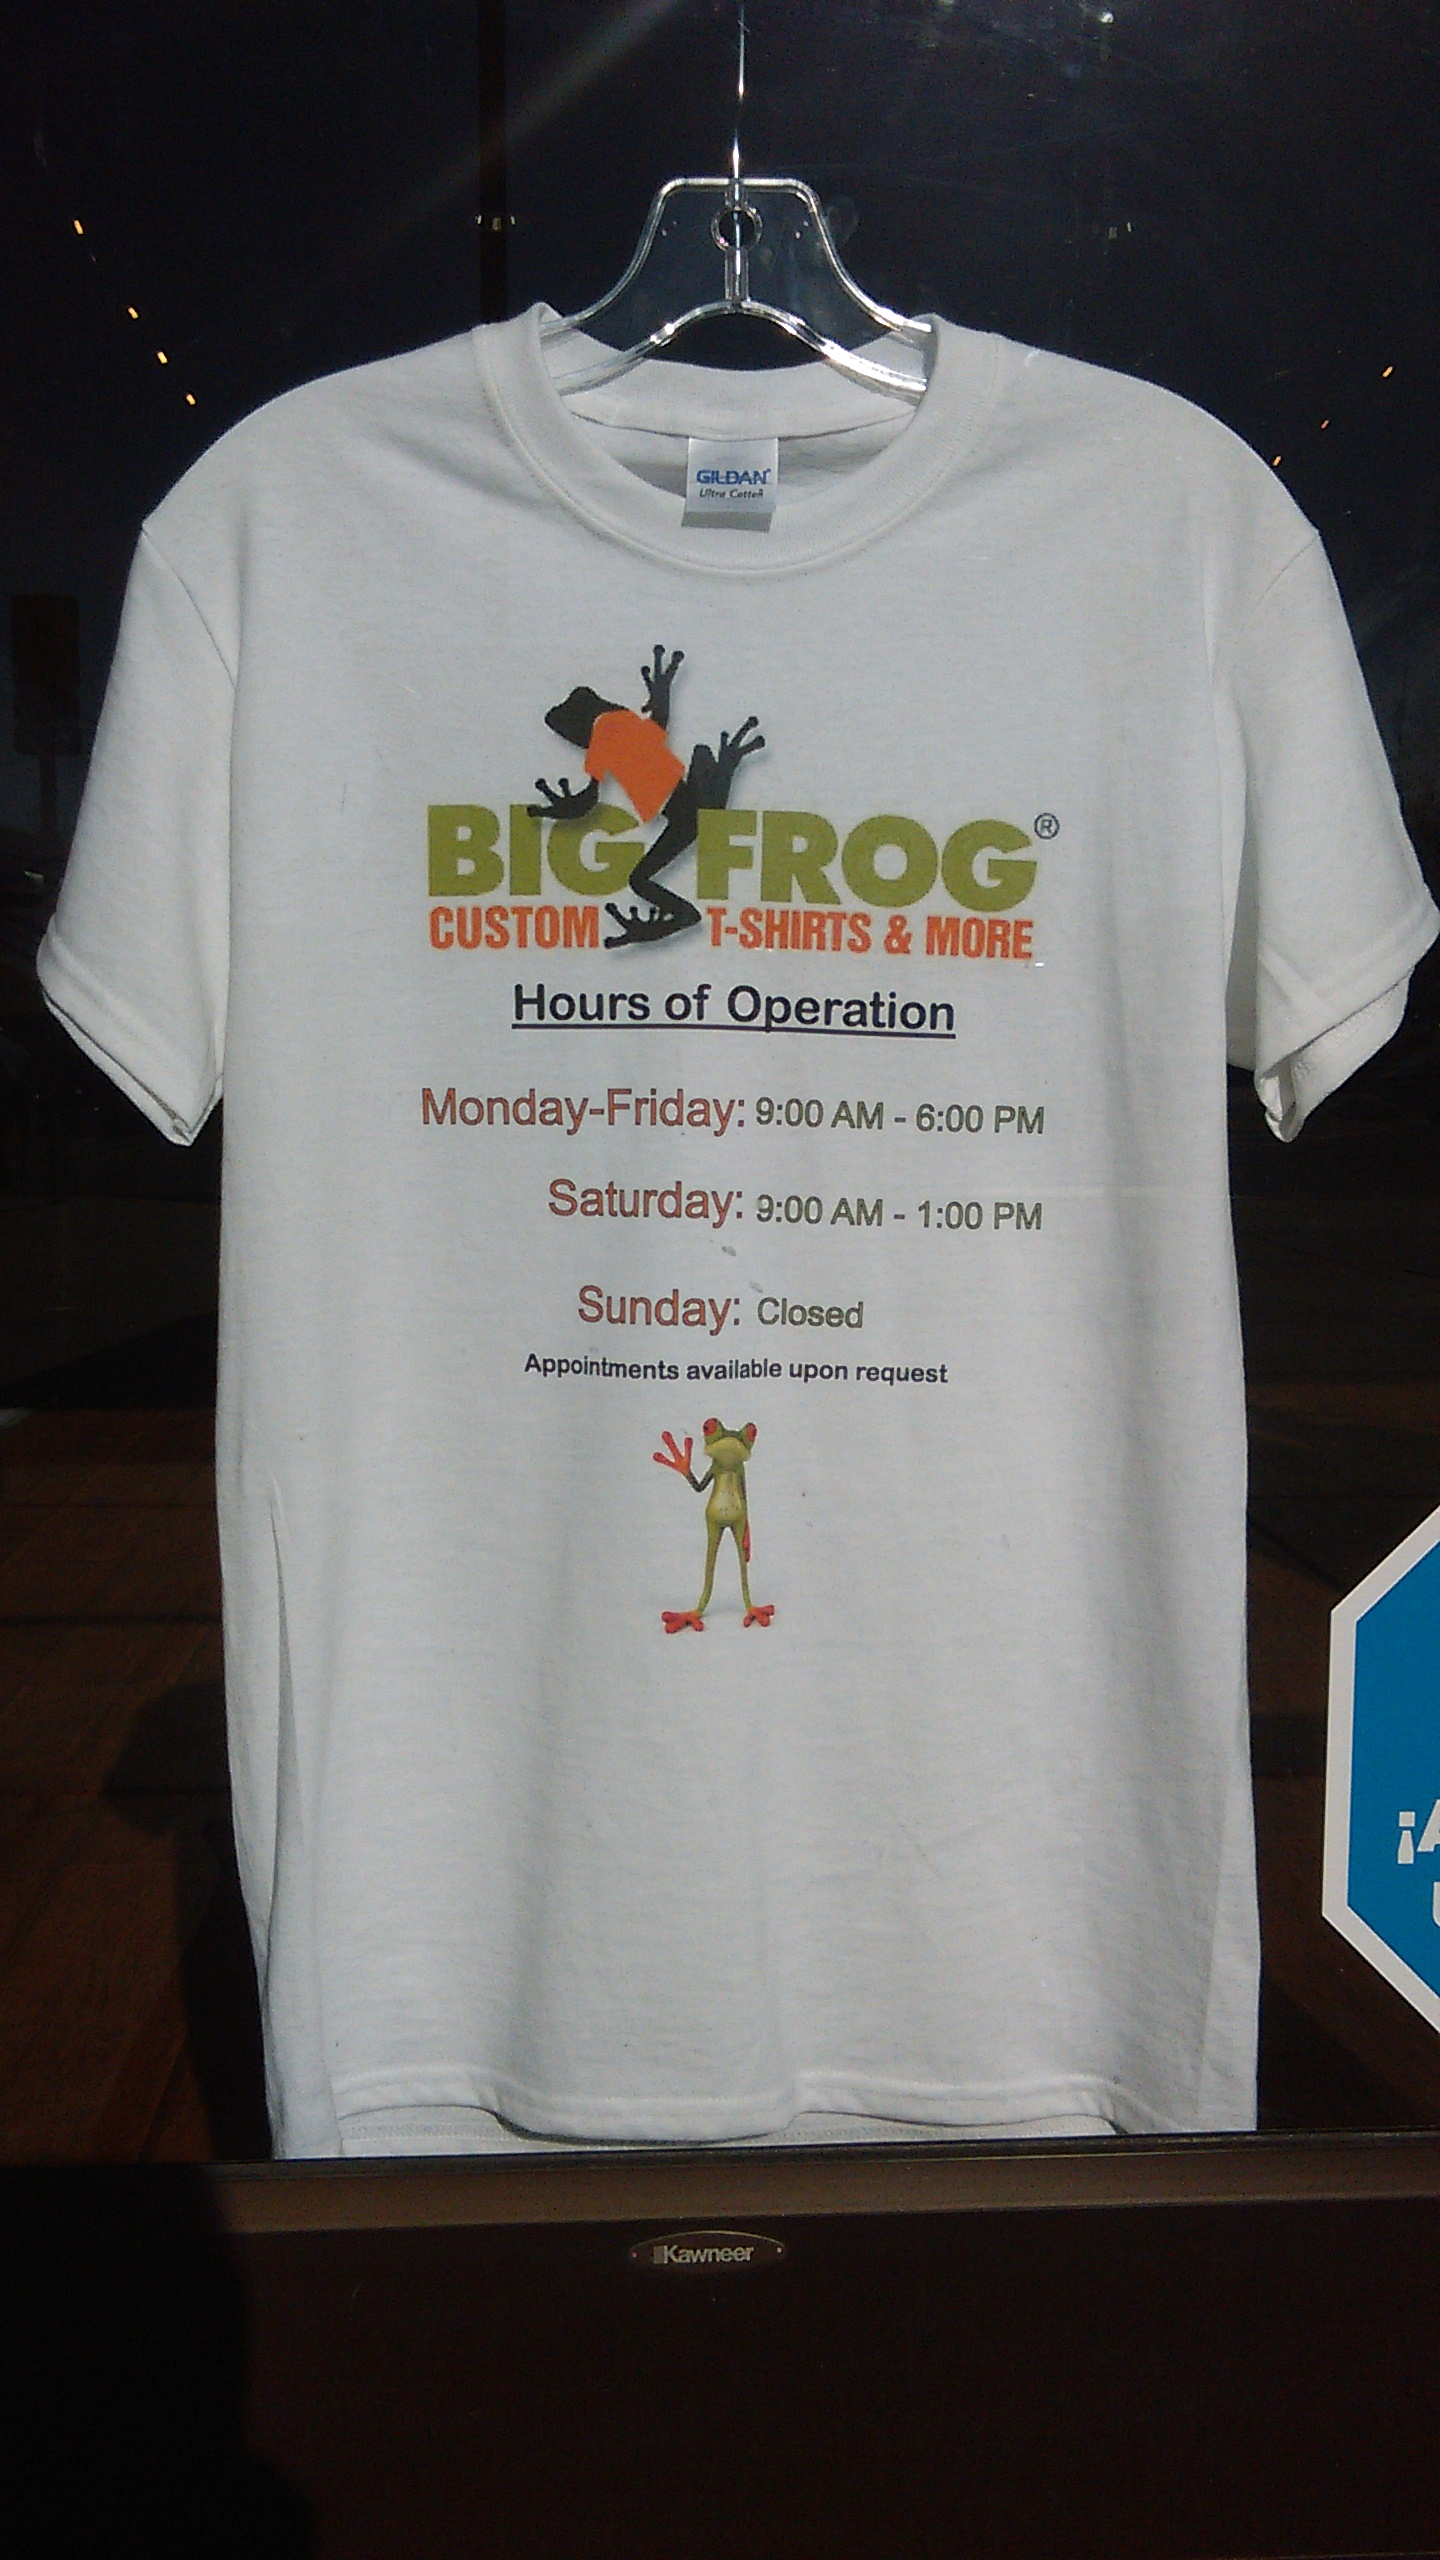 big frog custom t shirts more in aurora co 80015